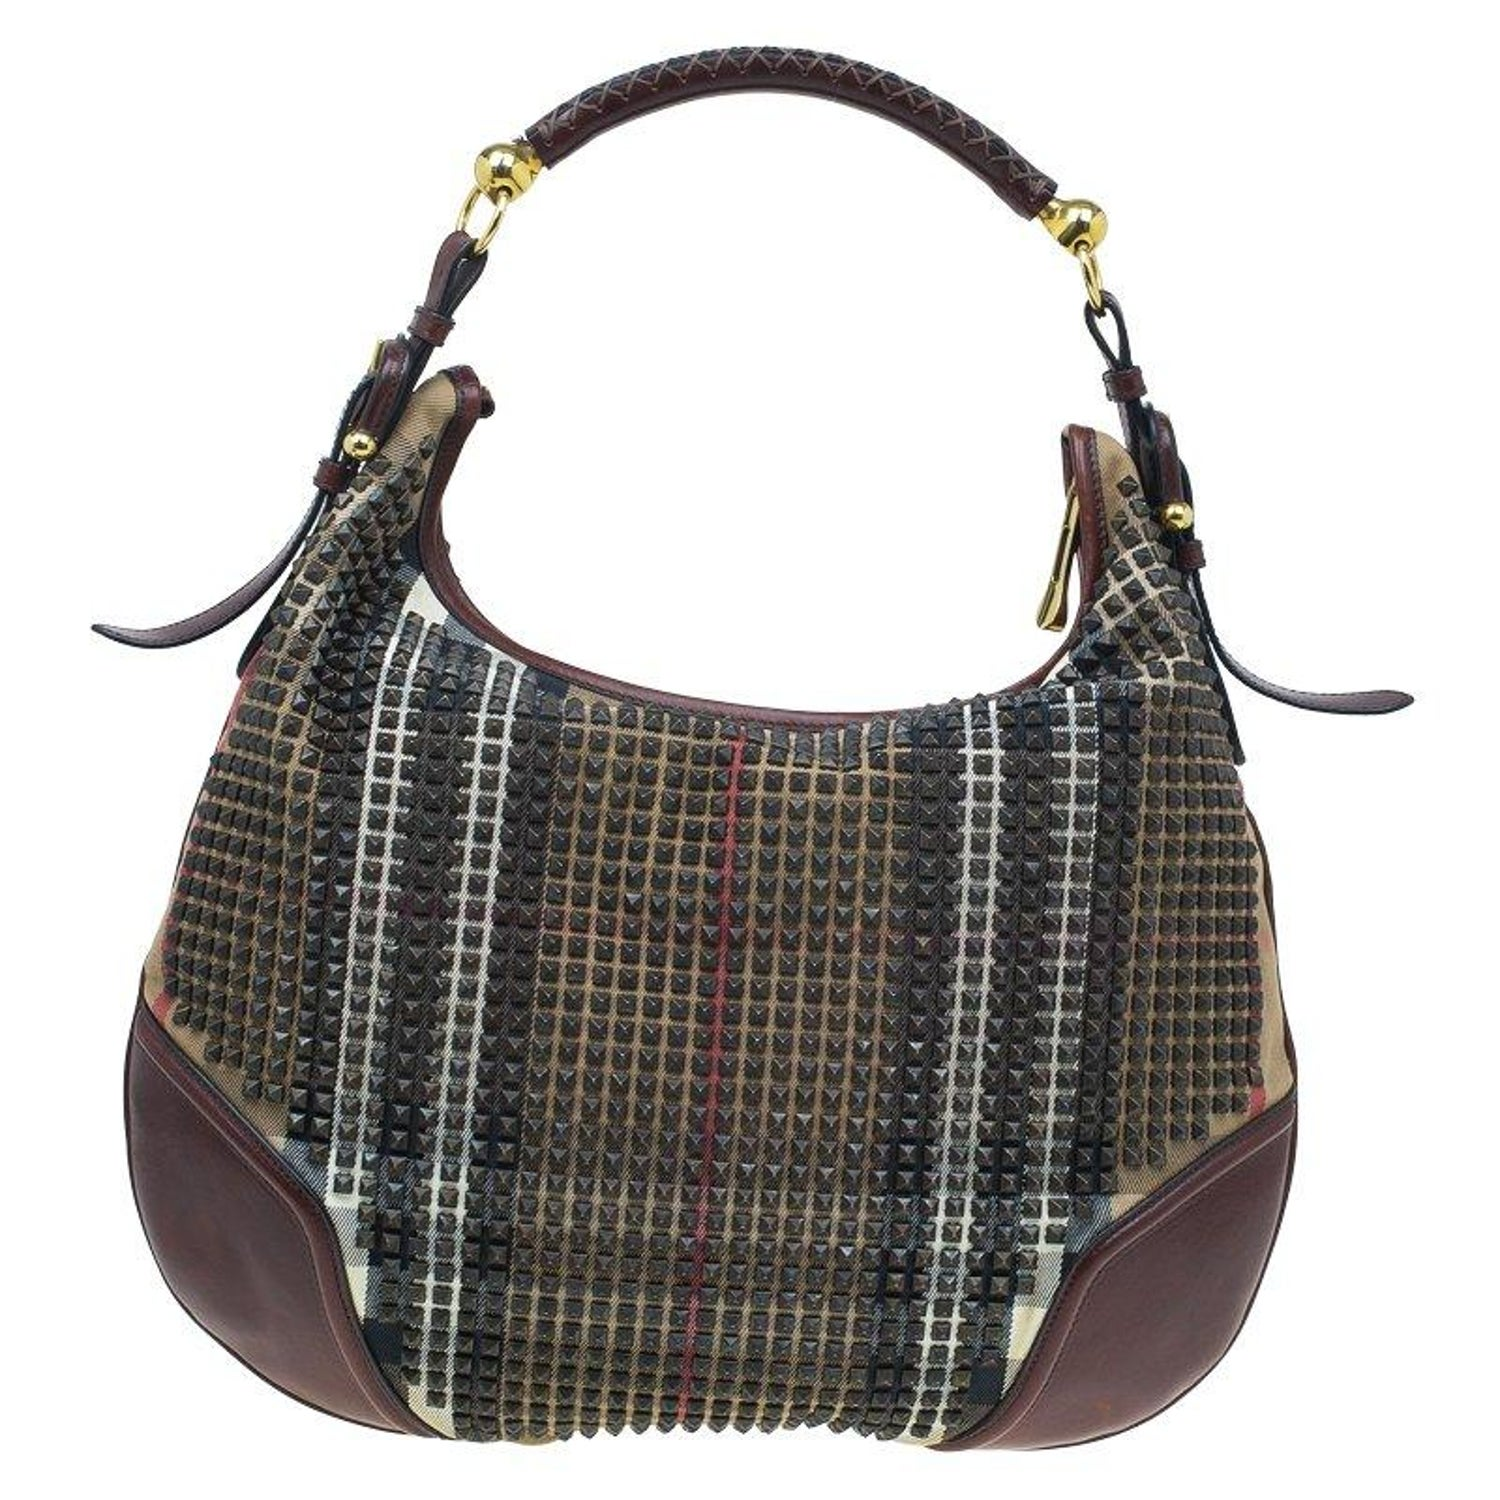 ed0ff5fd629 Burberry Nova Check Canvas and Leather Studded Hoxton Hobo For Sale at  1stdibs